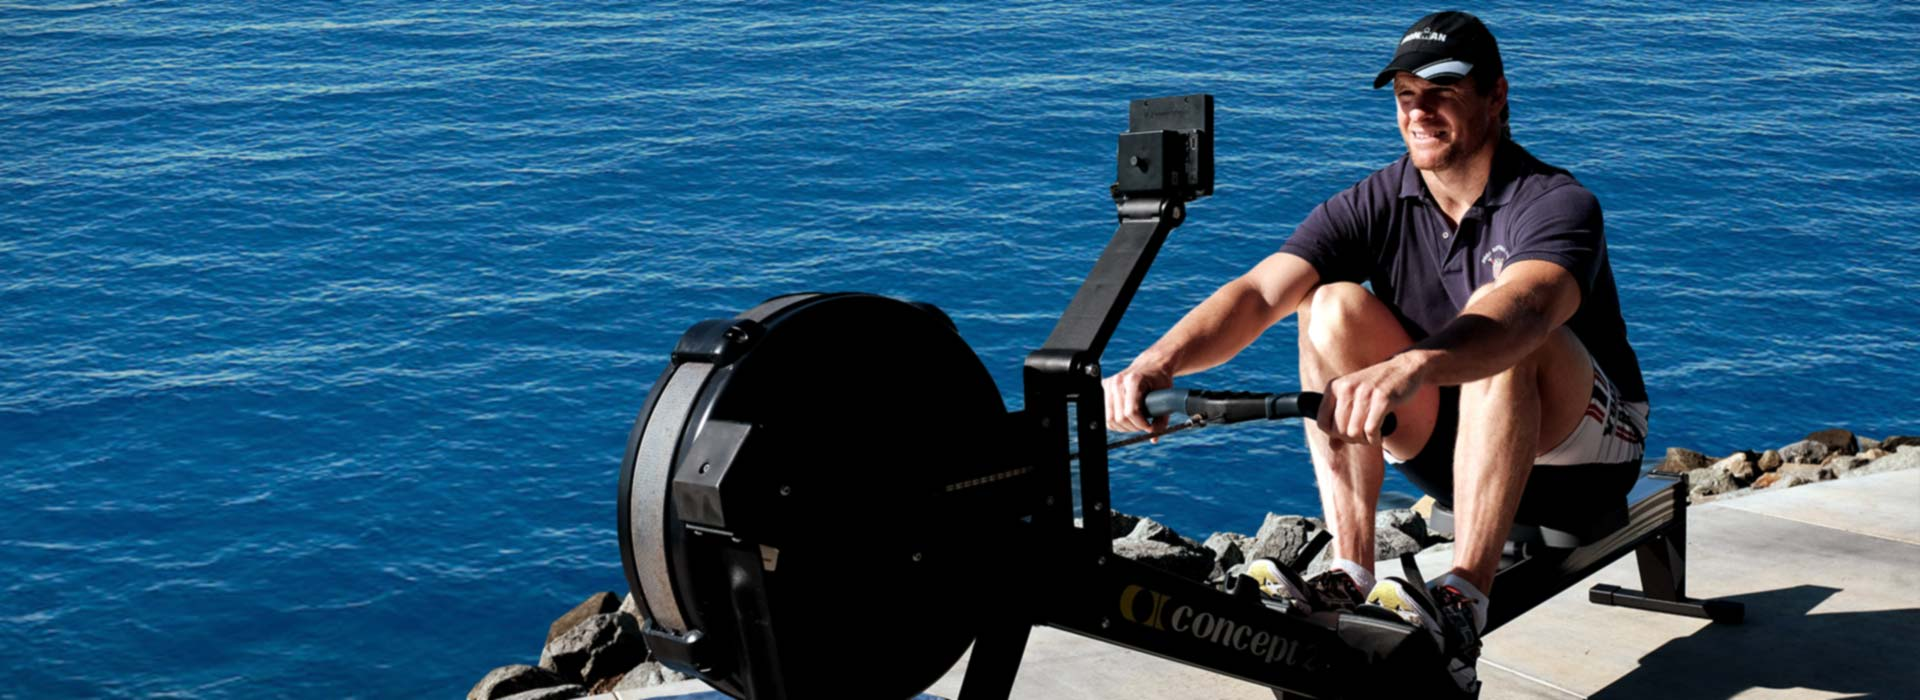 30-day Roworx Indoor Rowing Workout Plan